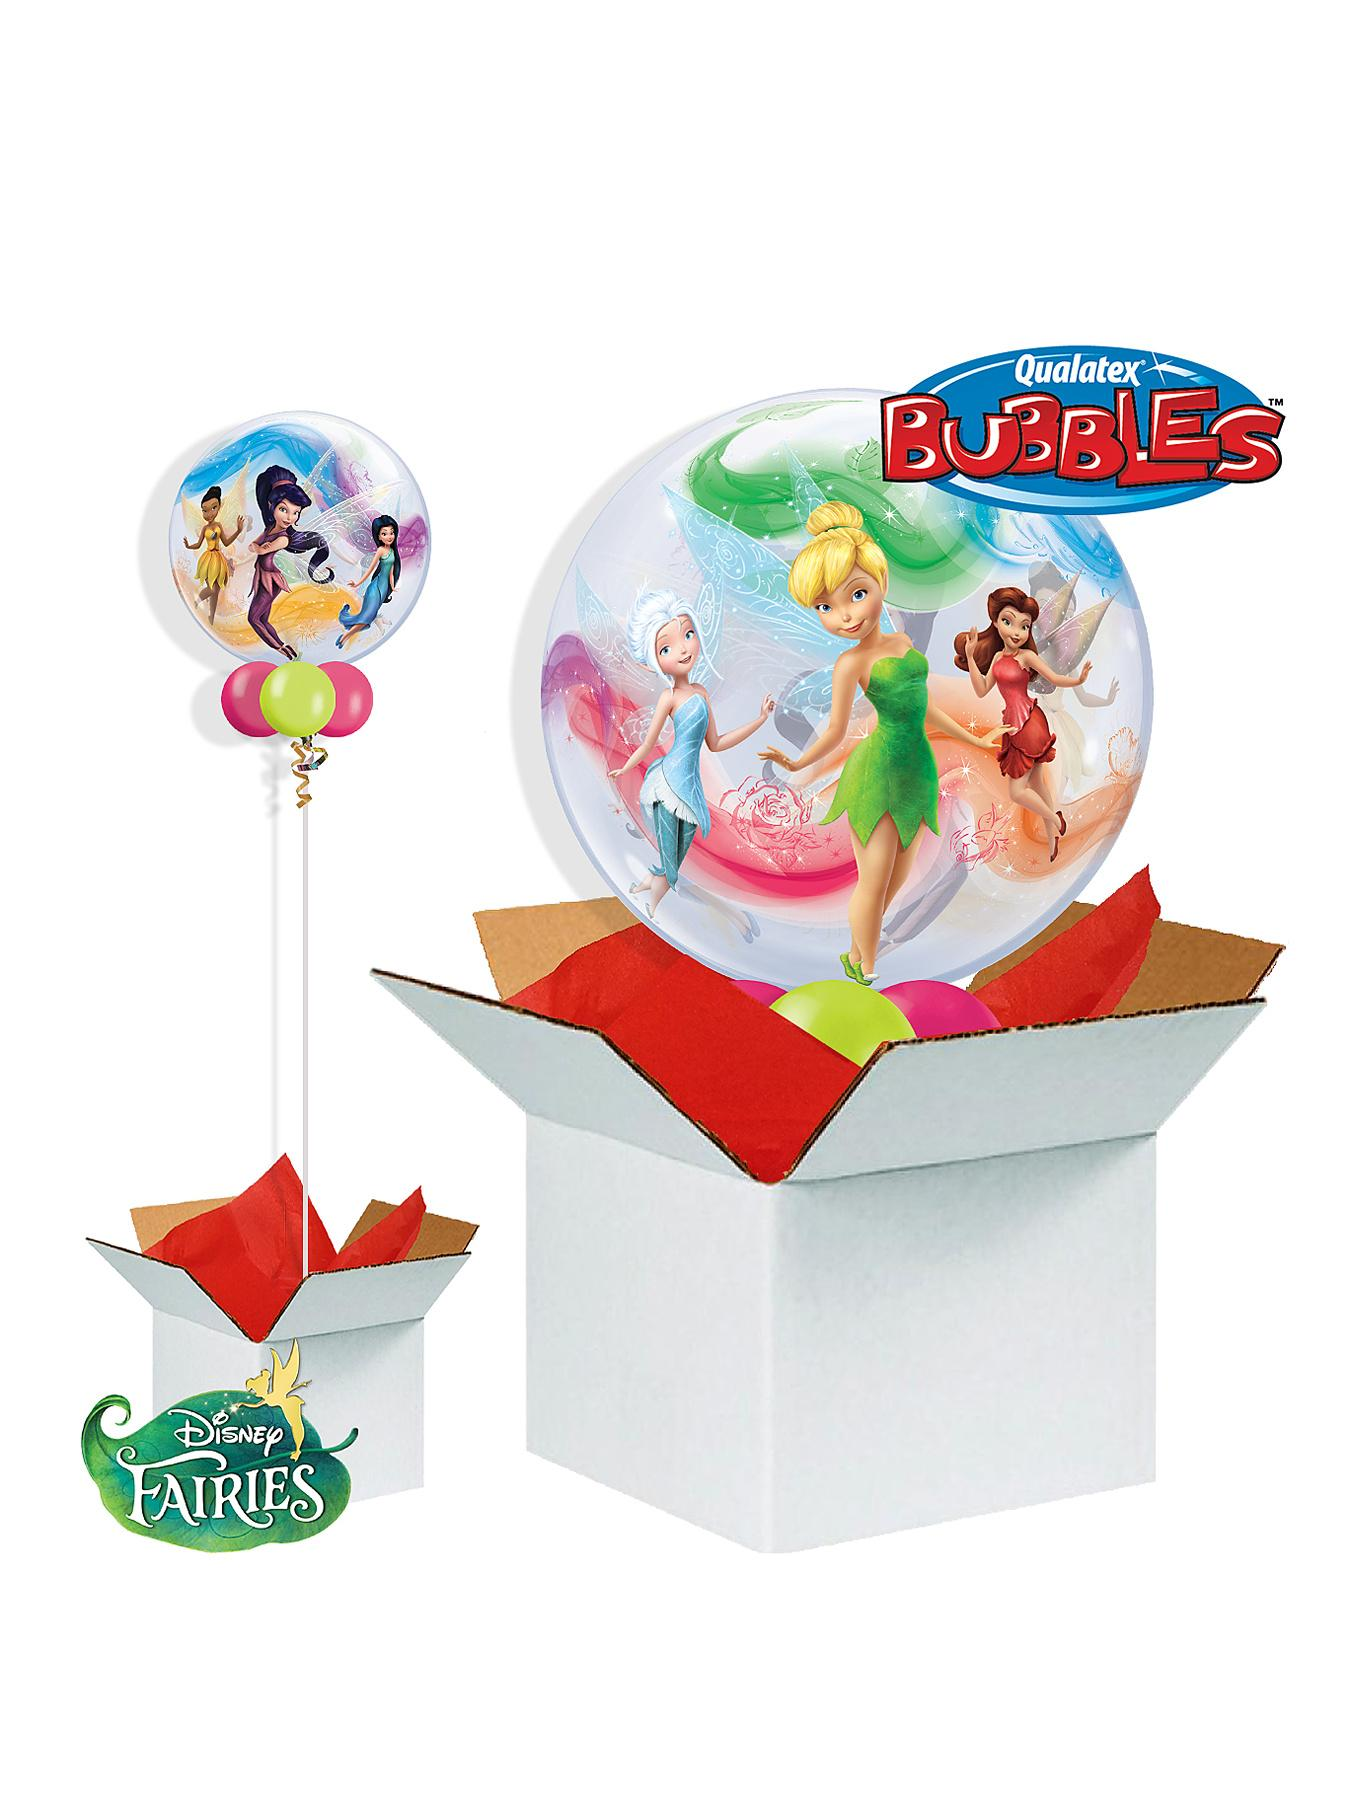 Disney Fairies 22 inch Bubble Balloon